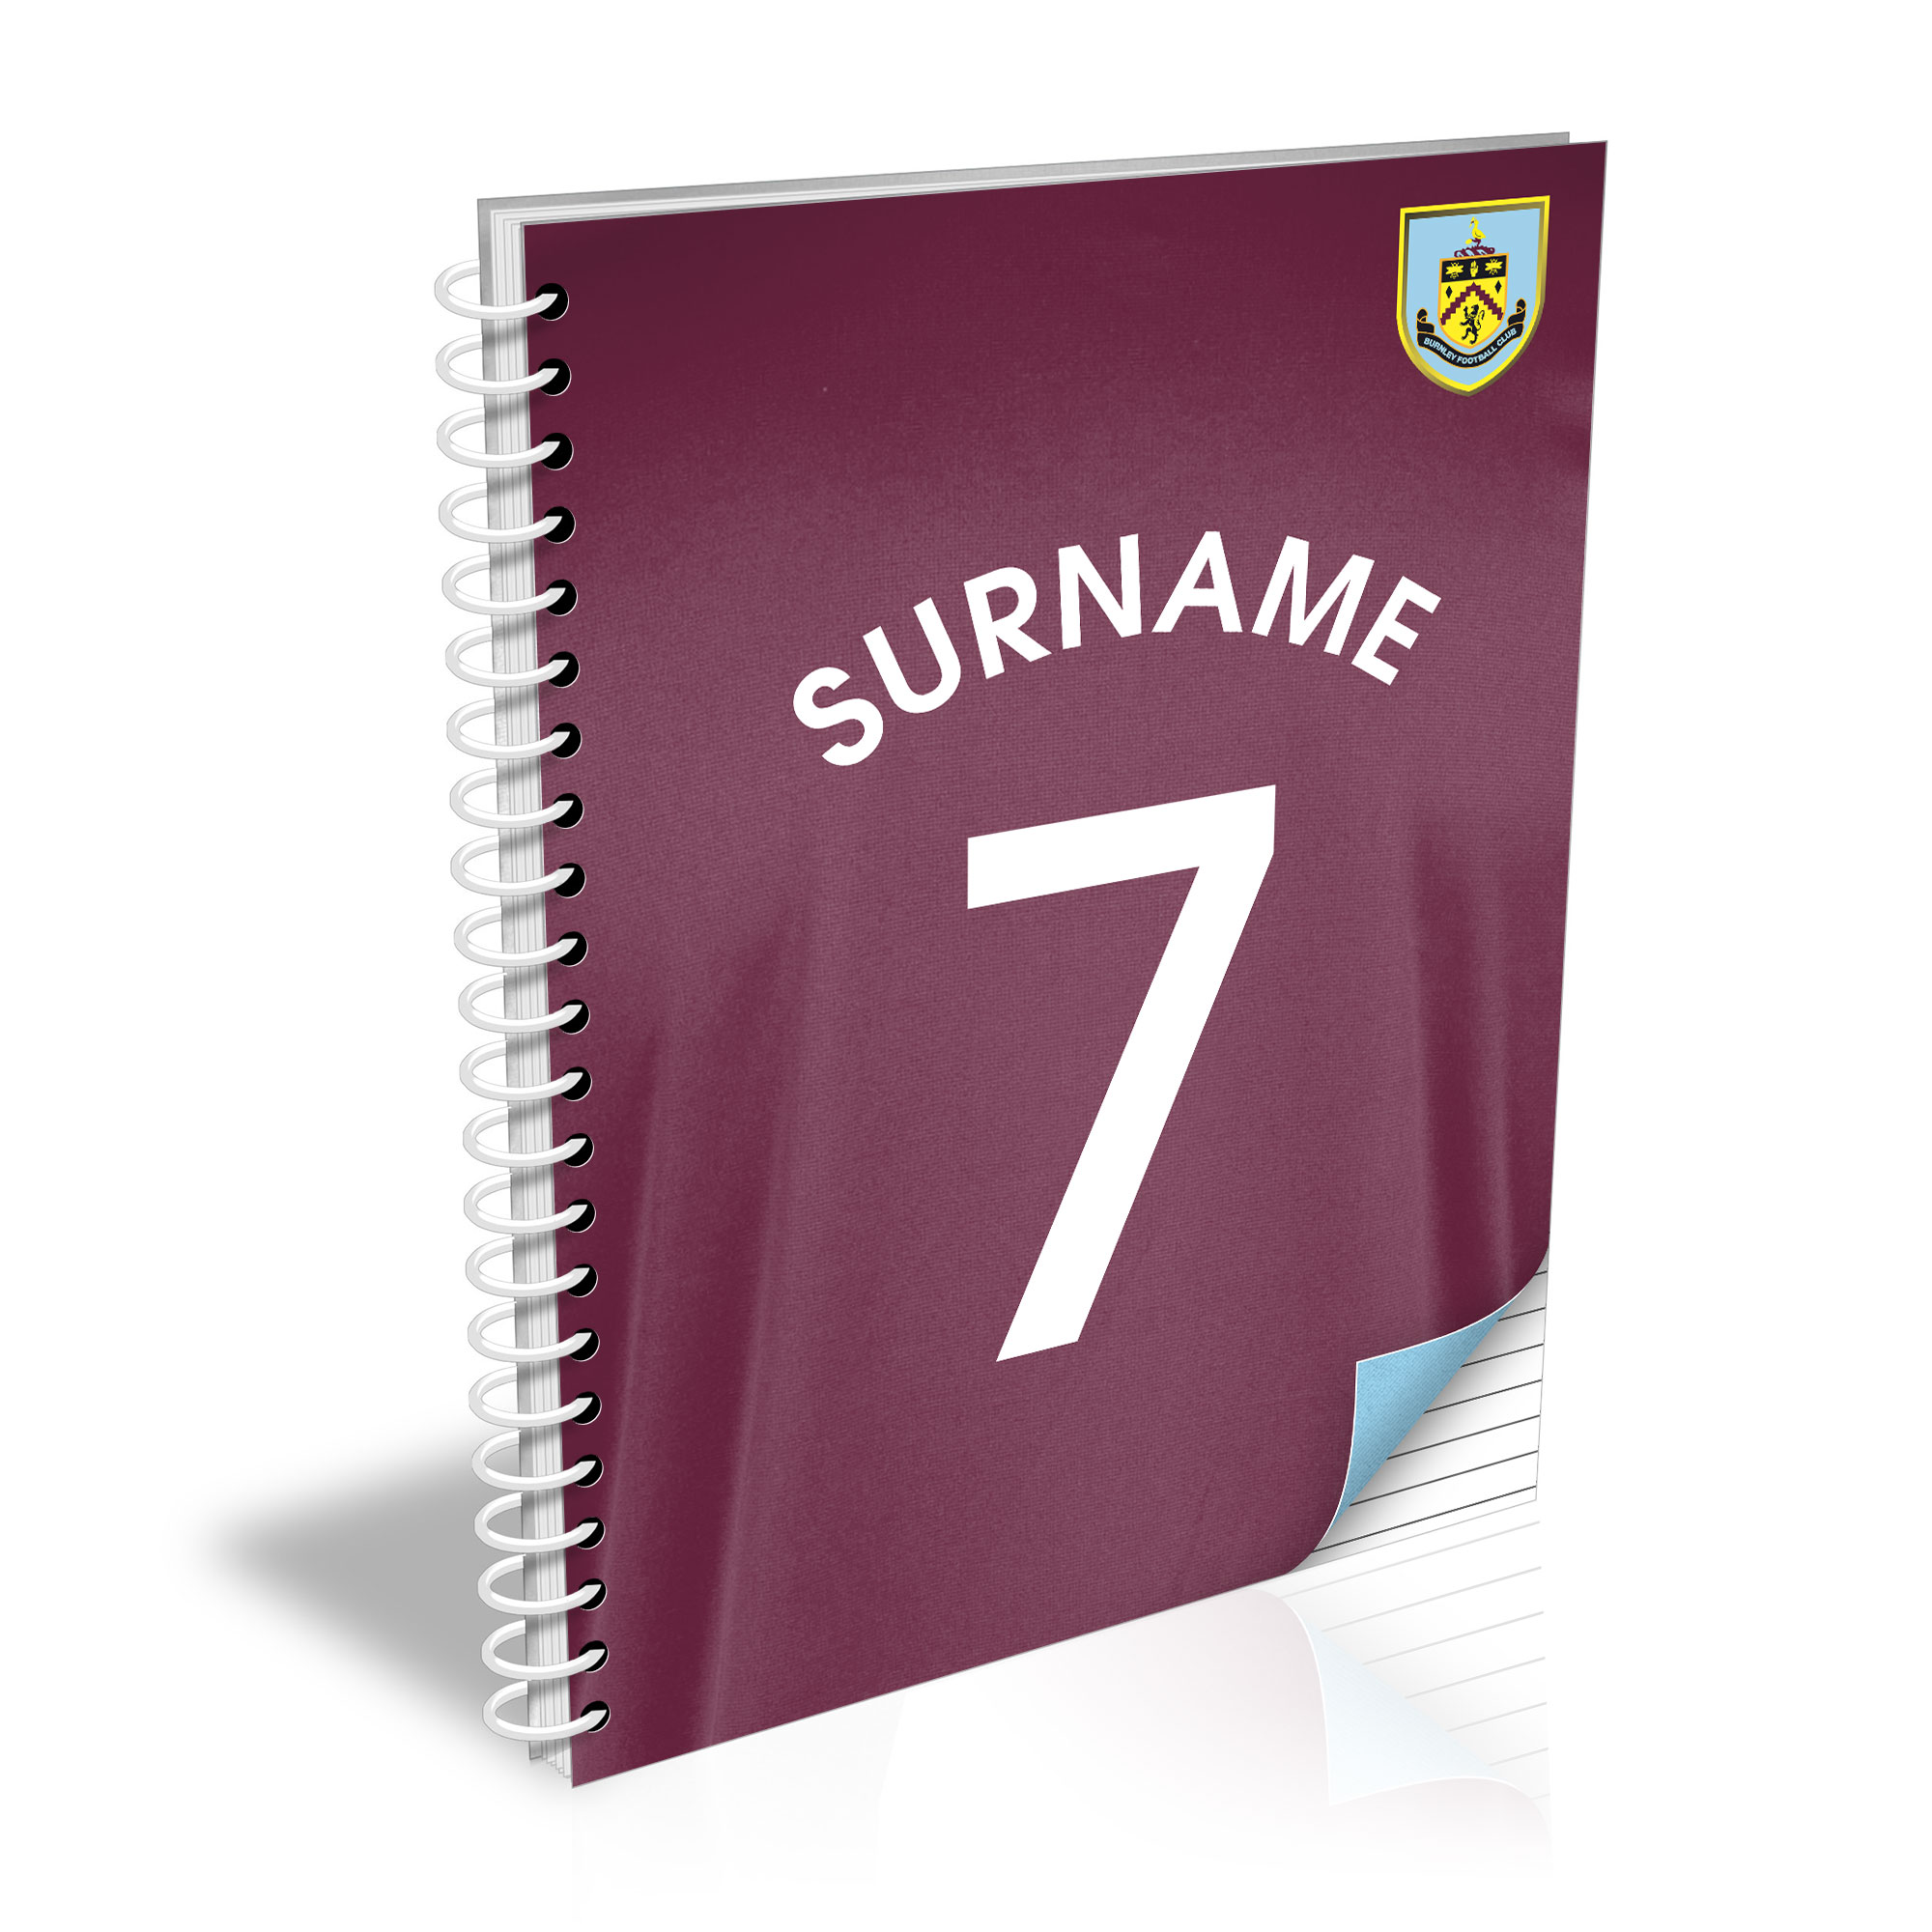 Burnley FC Shirt Notebook